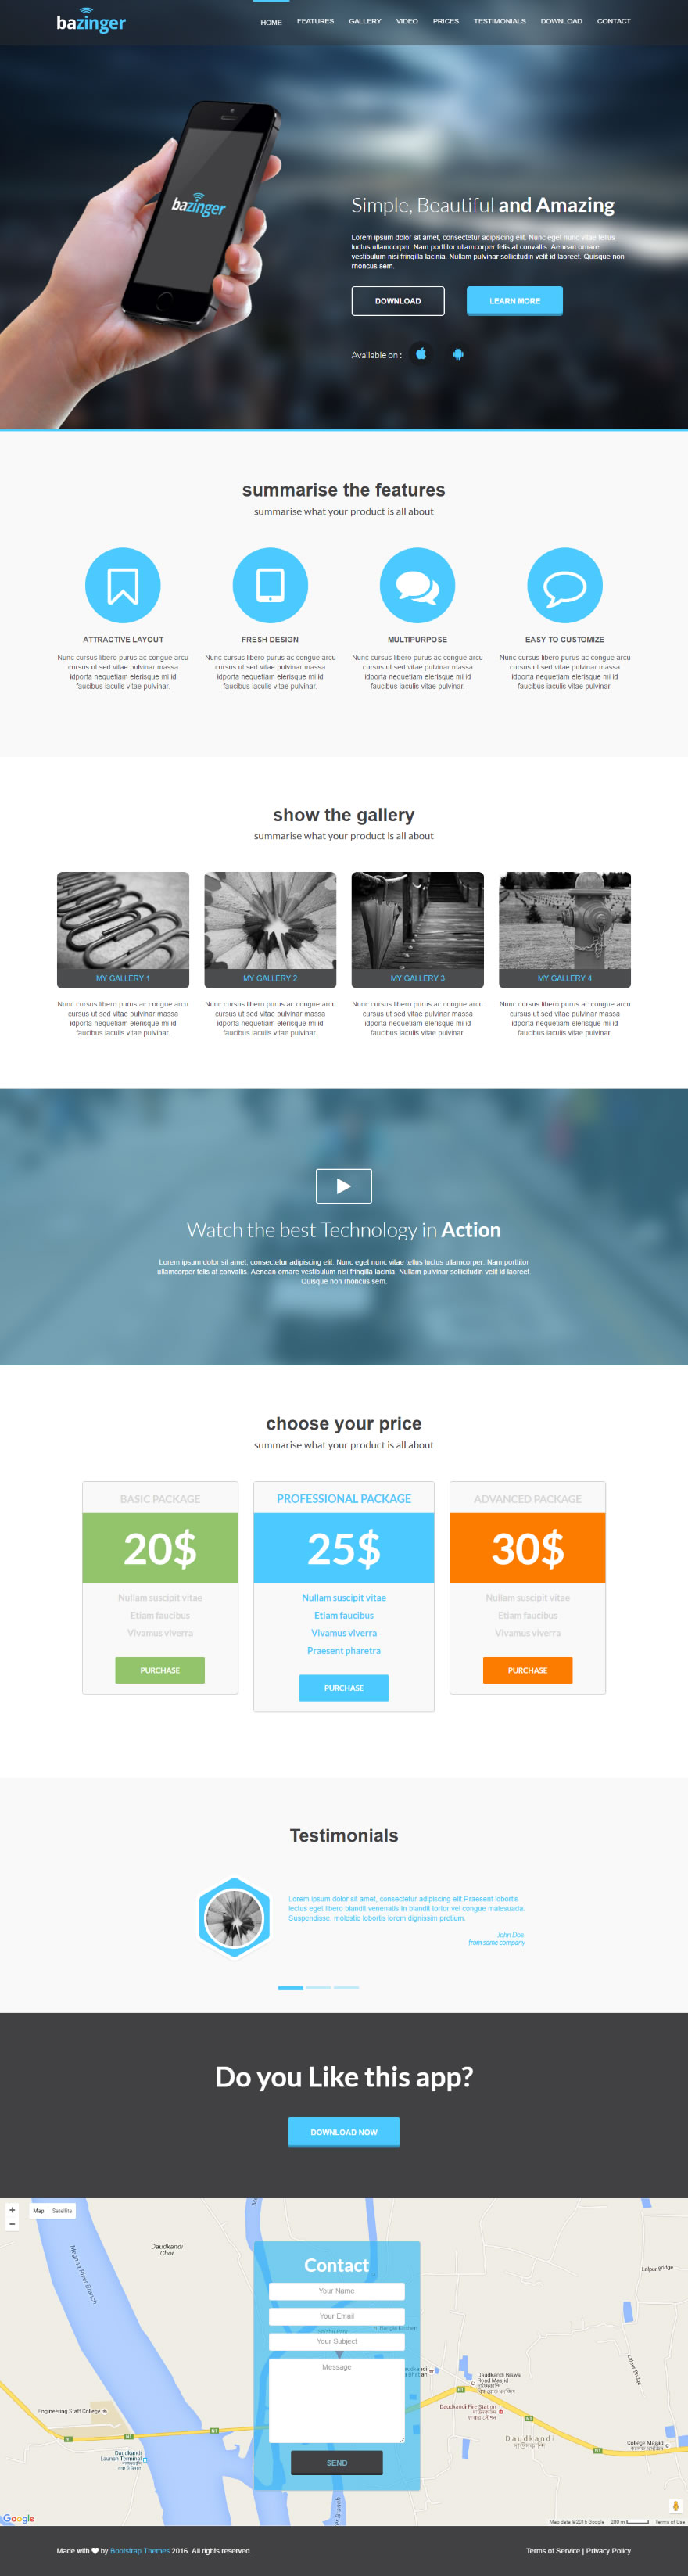 Github bootstrapthemesco bazinger landing page template for Dreamweaver app templates